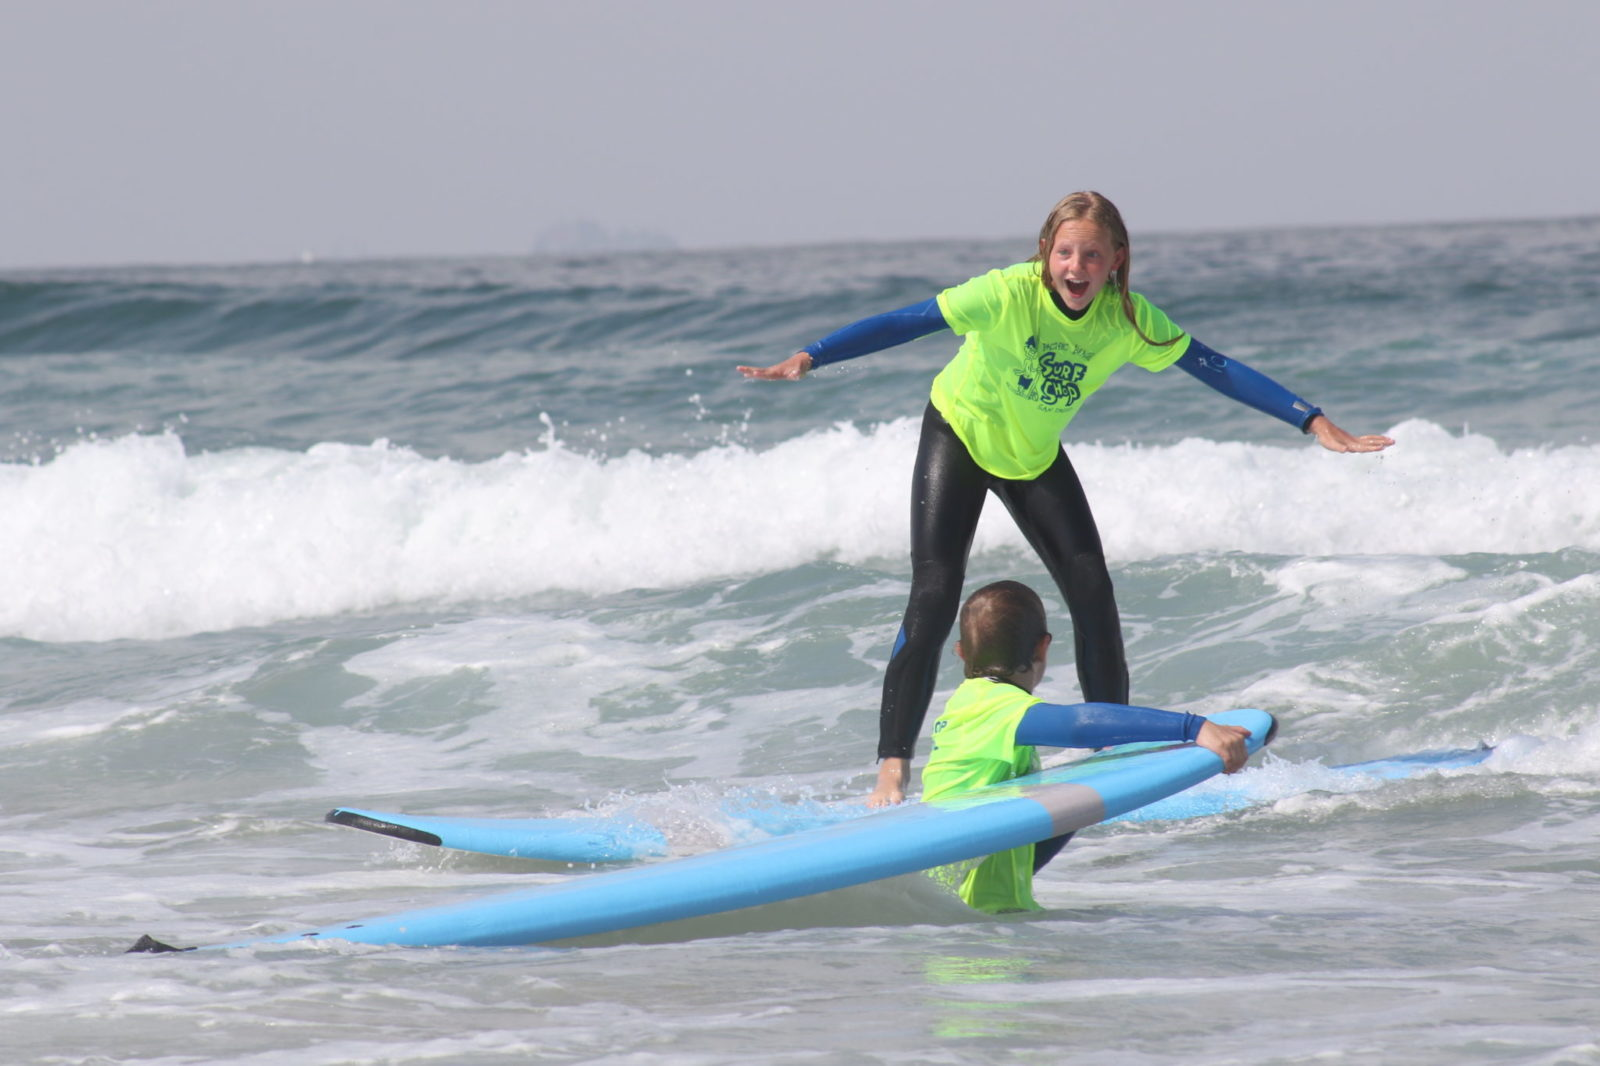 San Diego Surf Lessons, San Diego Surf School, Learn to surf, learn to surf san diego, pb surf shop, pb surf school, surf shop, pb surf shop, pacific beach surf shop, san diego surf shop, surf school, pb surf school, pacific beach surf school, san diego surf school, surf equipment rentals, pb surf equipment rentals, pacific beach surf equipment rentals, san diego surf equipment rentals, surf products, pb surf products, pacific beach surf products, san diego surf products, surf camp, pb surf camp, pacific beach surf camp, san diego surf camp, surf lessons, pb surf lessons, pacific beach surf lessons, san diego surf lessons